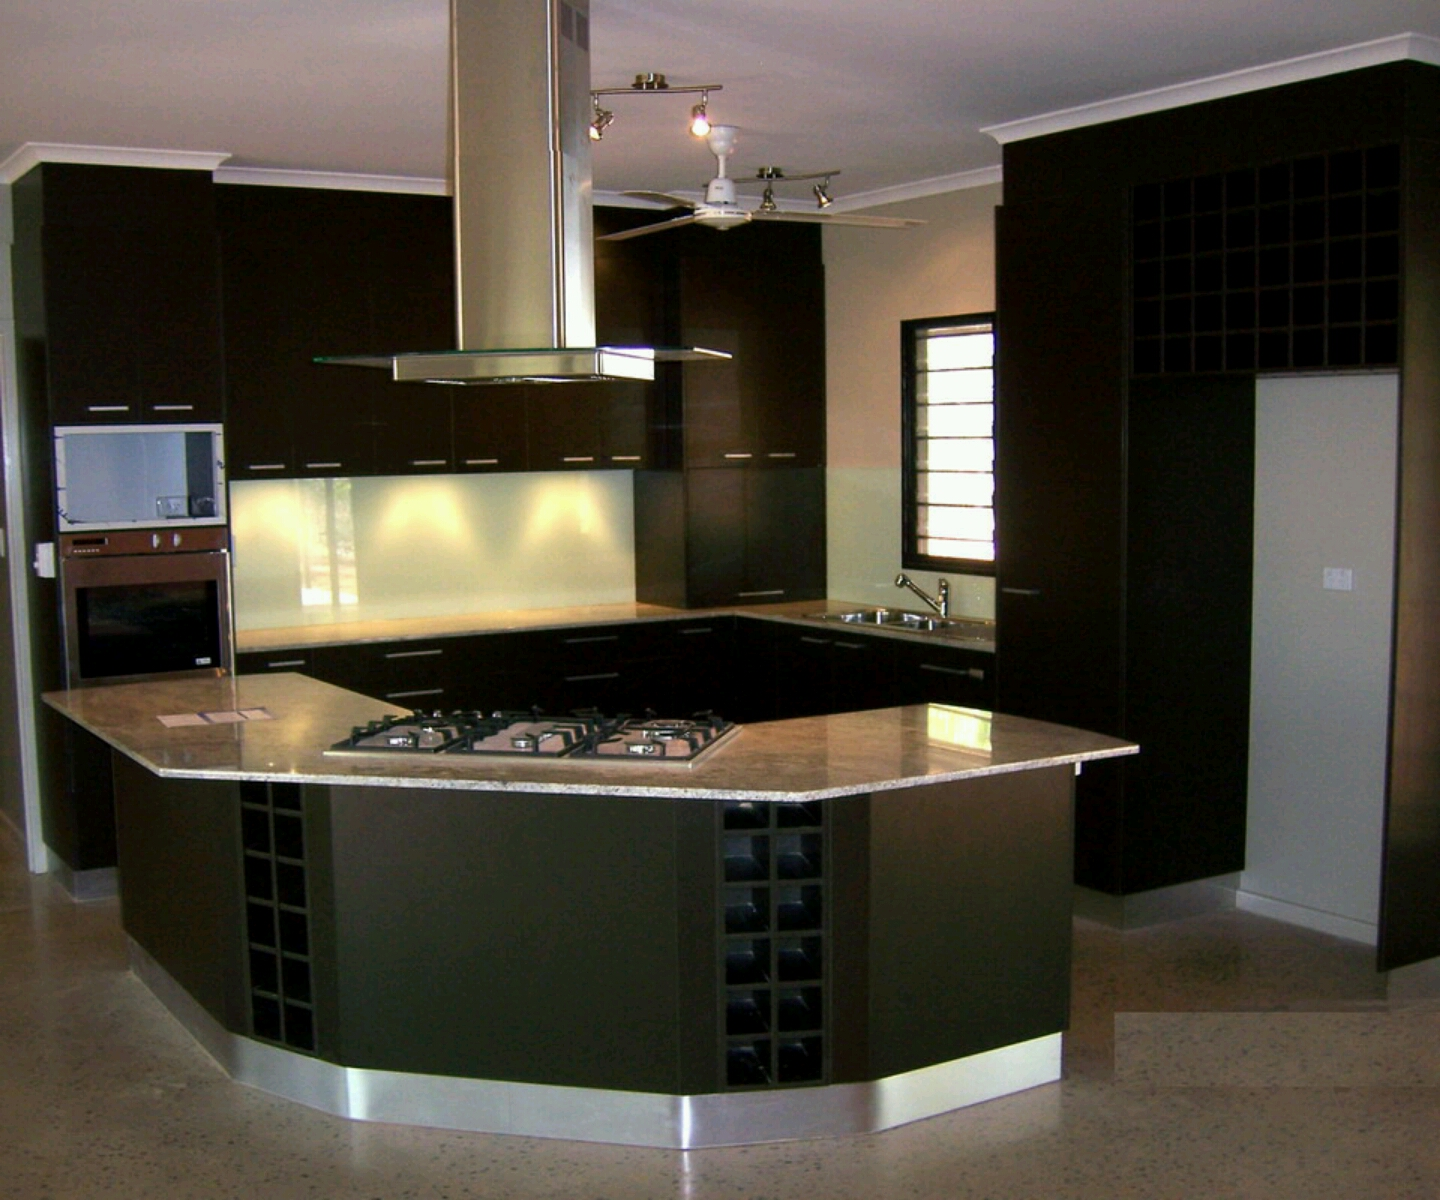 Best Kitchen Design Pics New Home Designs Latest Modern Kitchen Cabinets Designs